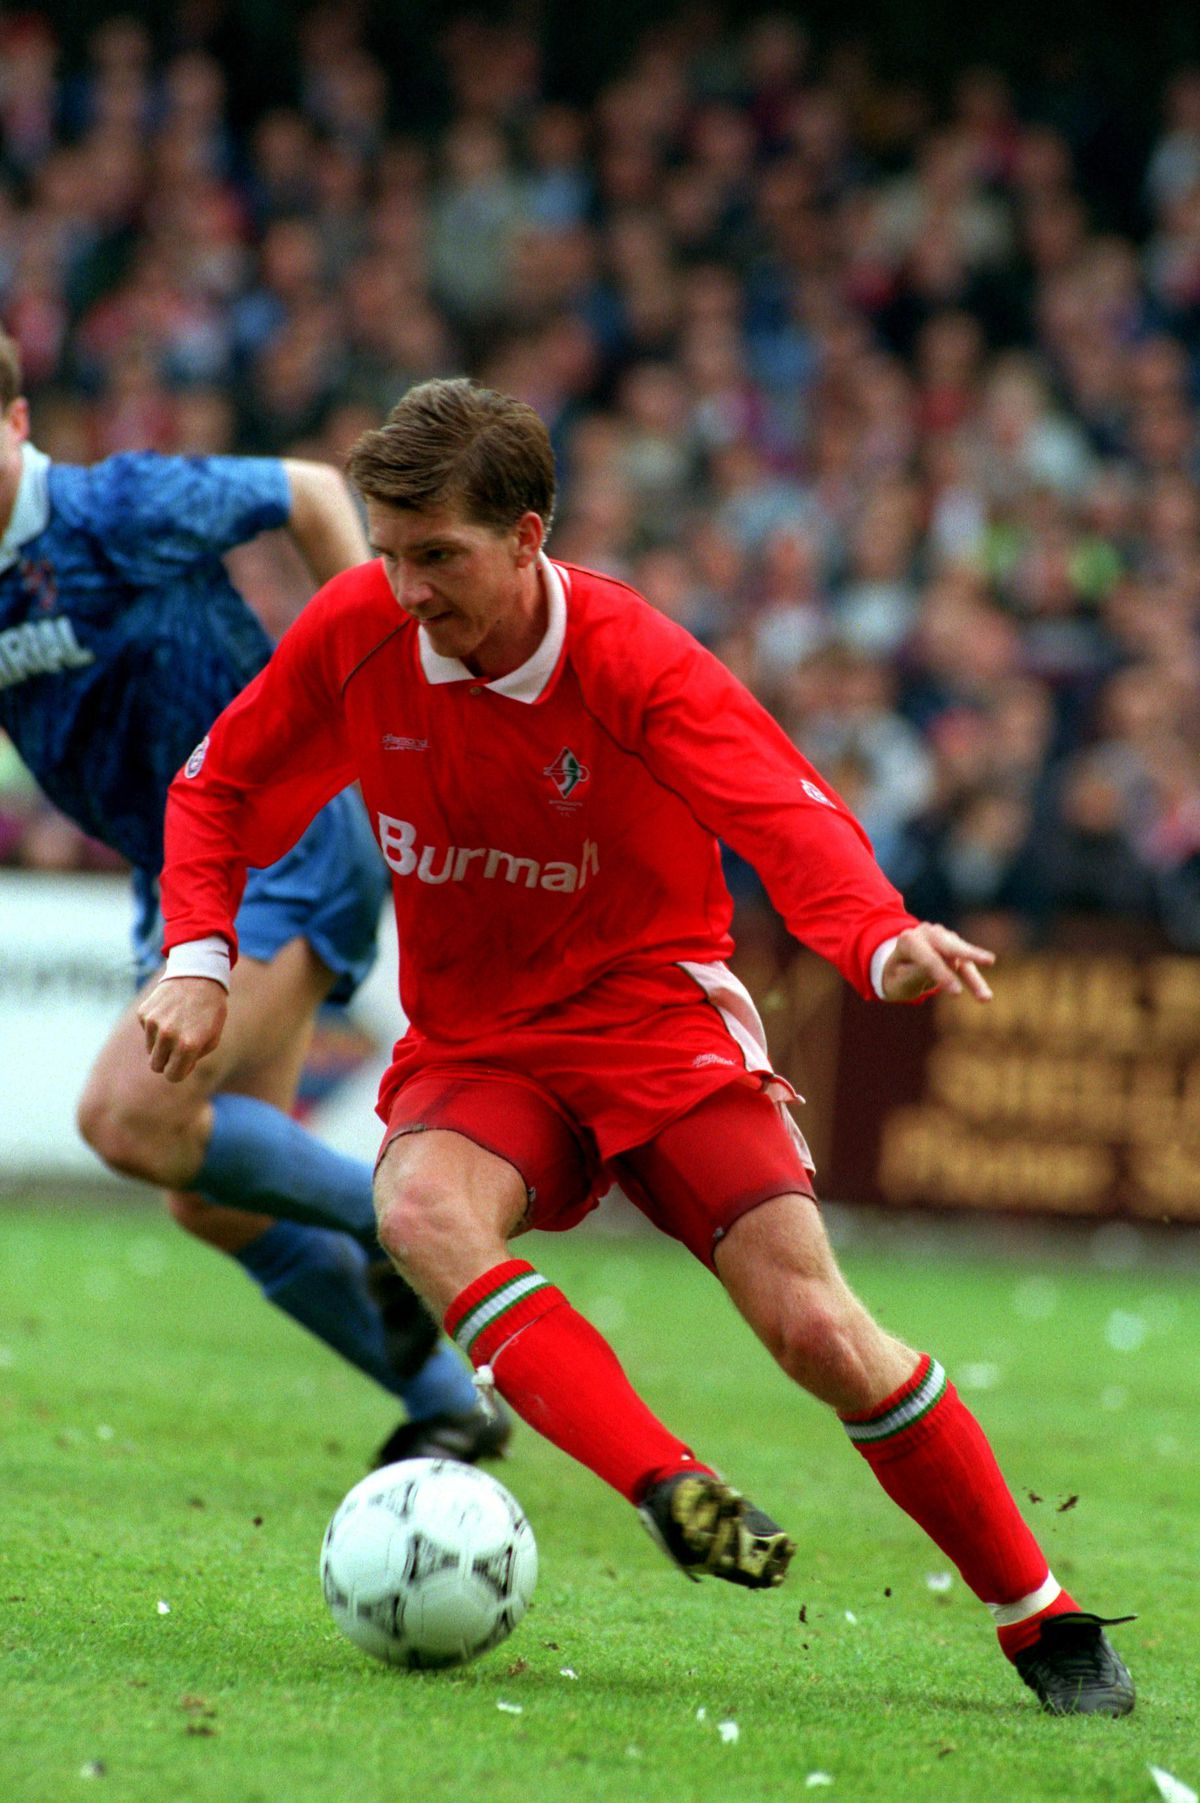 Soccer - Barclays League Division One - Playoffs - Semi Final - First Leg - Swindon v Tranmere Rovers